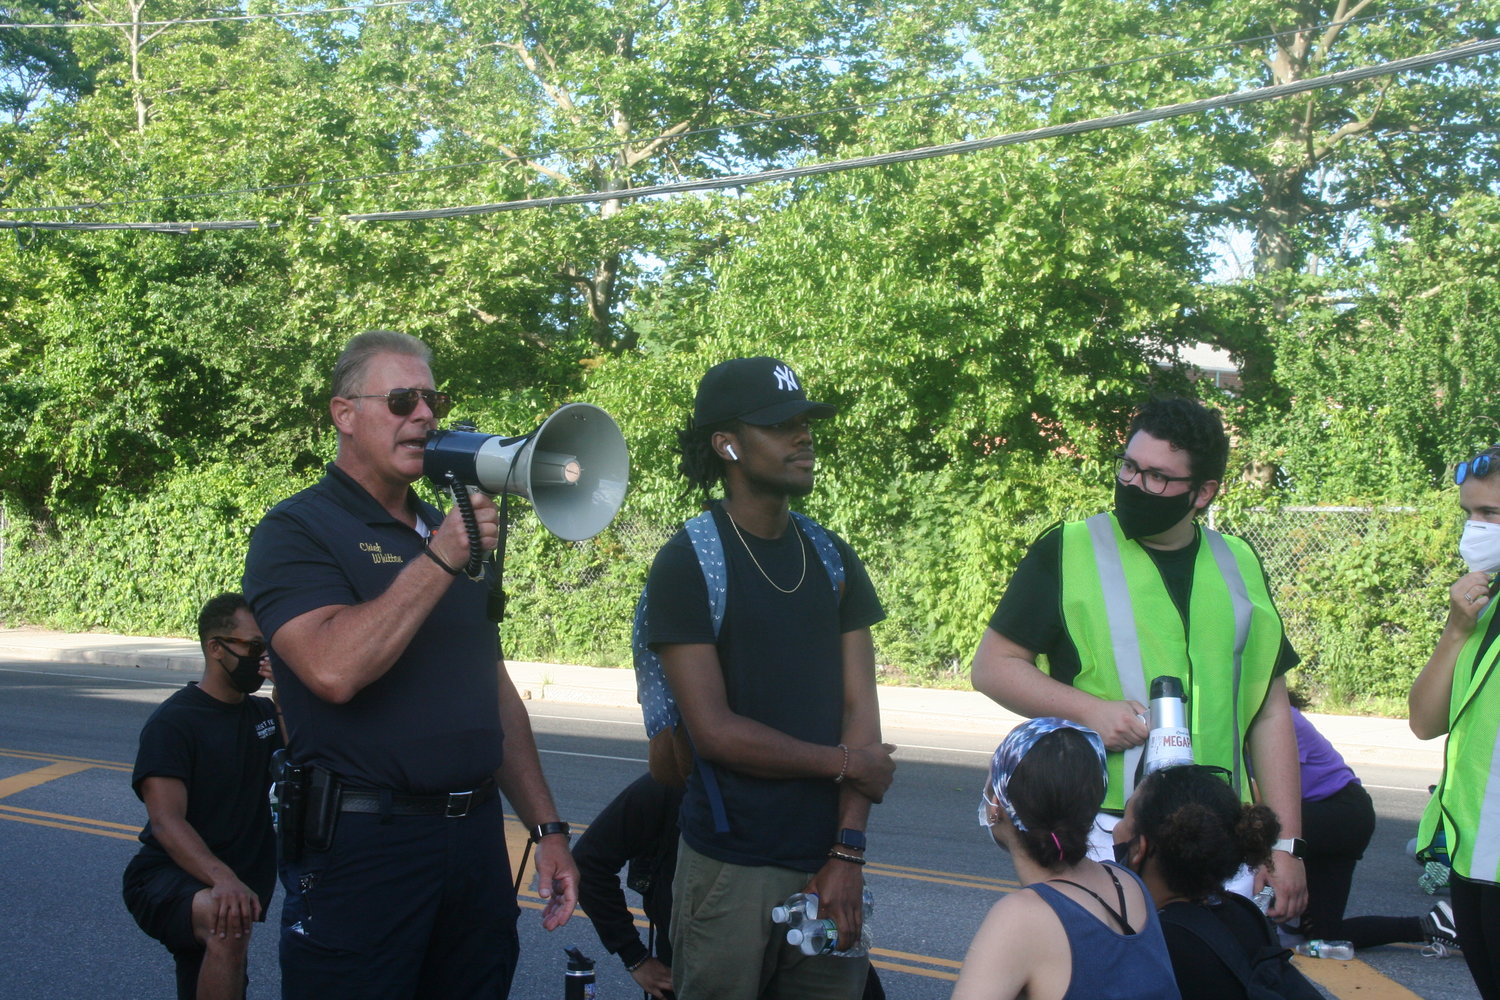 Antwan Brown, center, and protest organizer Stevens Martinez, far right, listened as Glen Cove Police Chief William Whitton told the crowd that he supported them, but would not kneel with them.